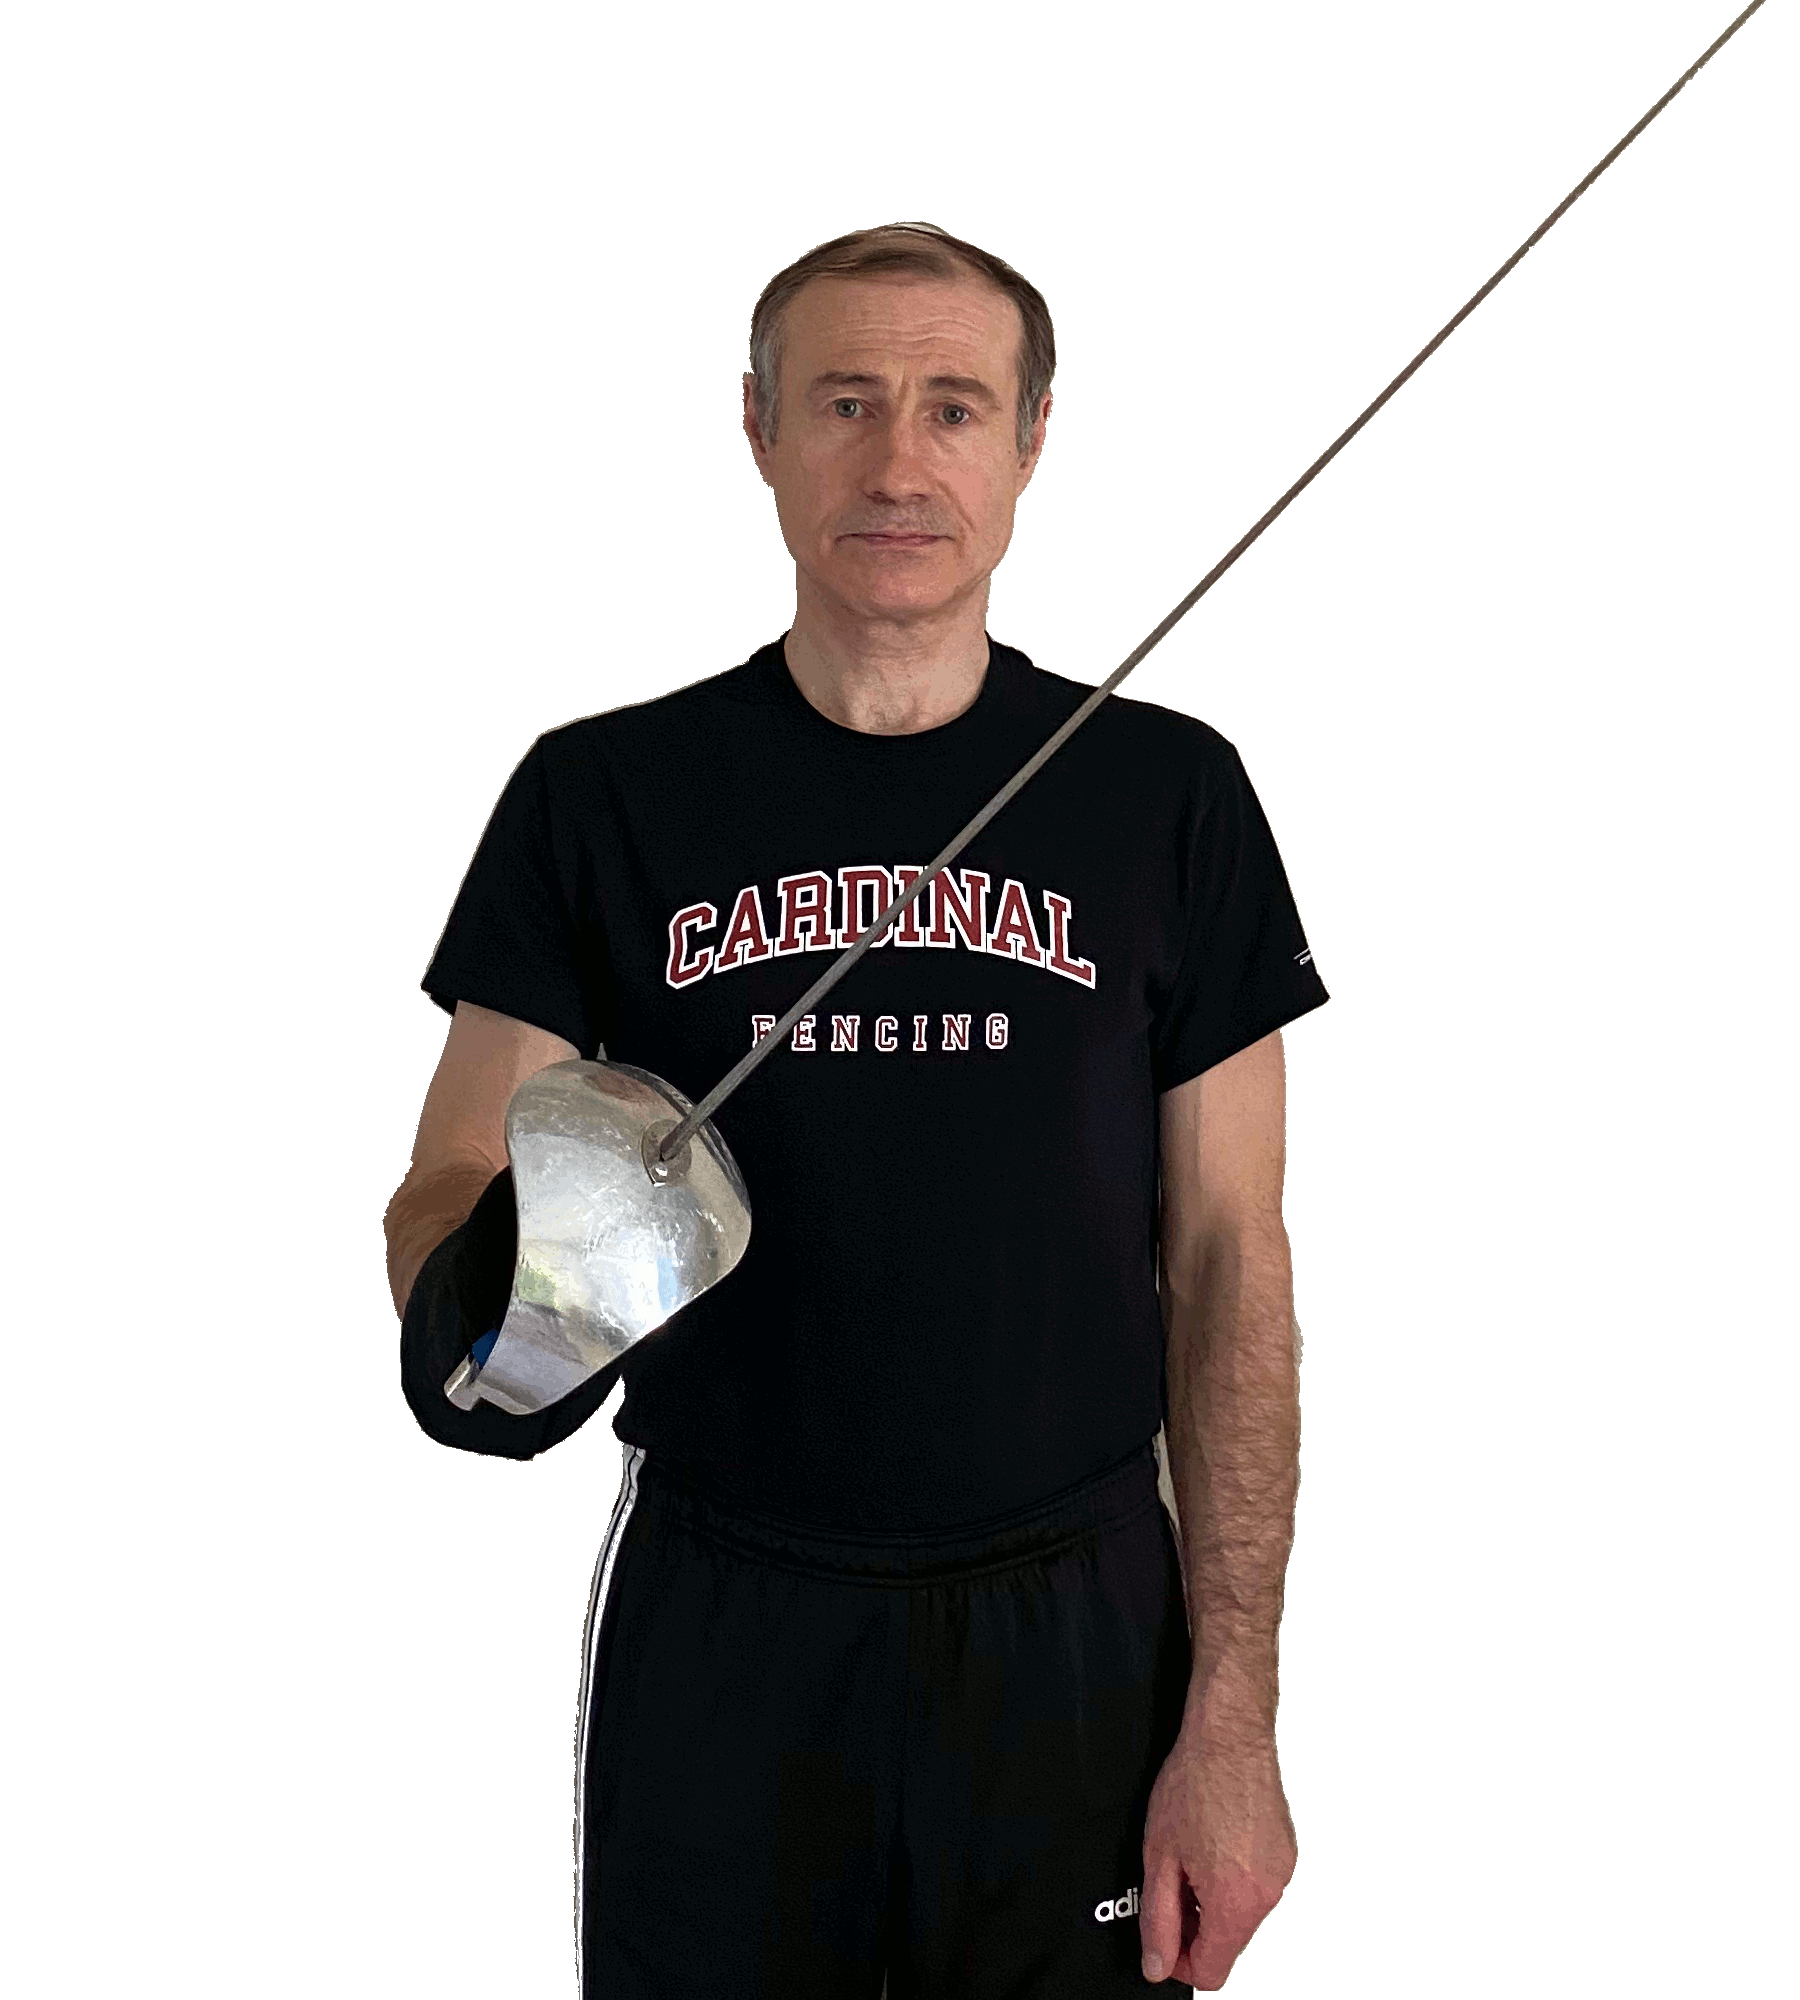 http://www.cardinalfencingclub.net/wp-content/uploads/2020/04/Coach-Grigory.png